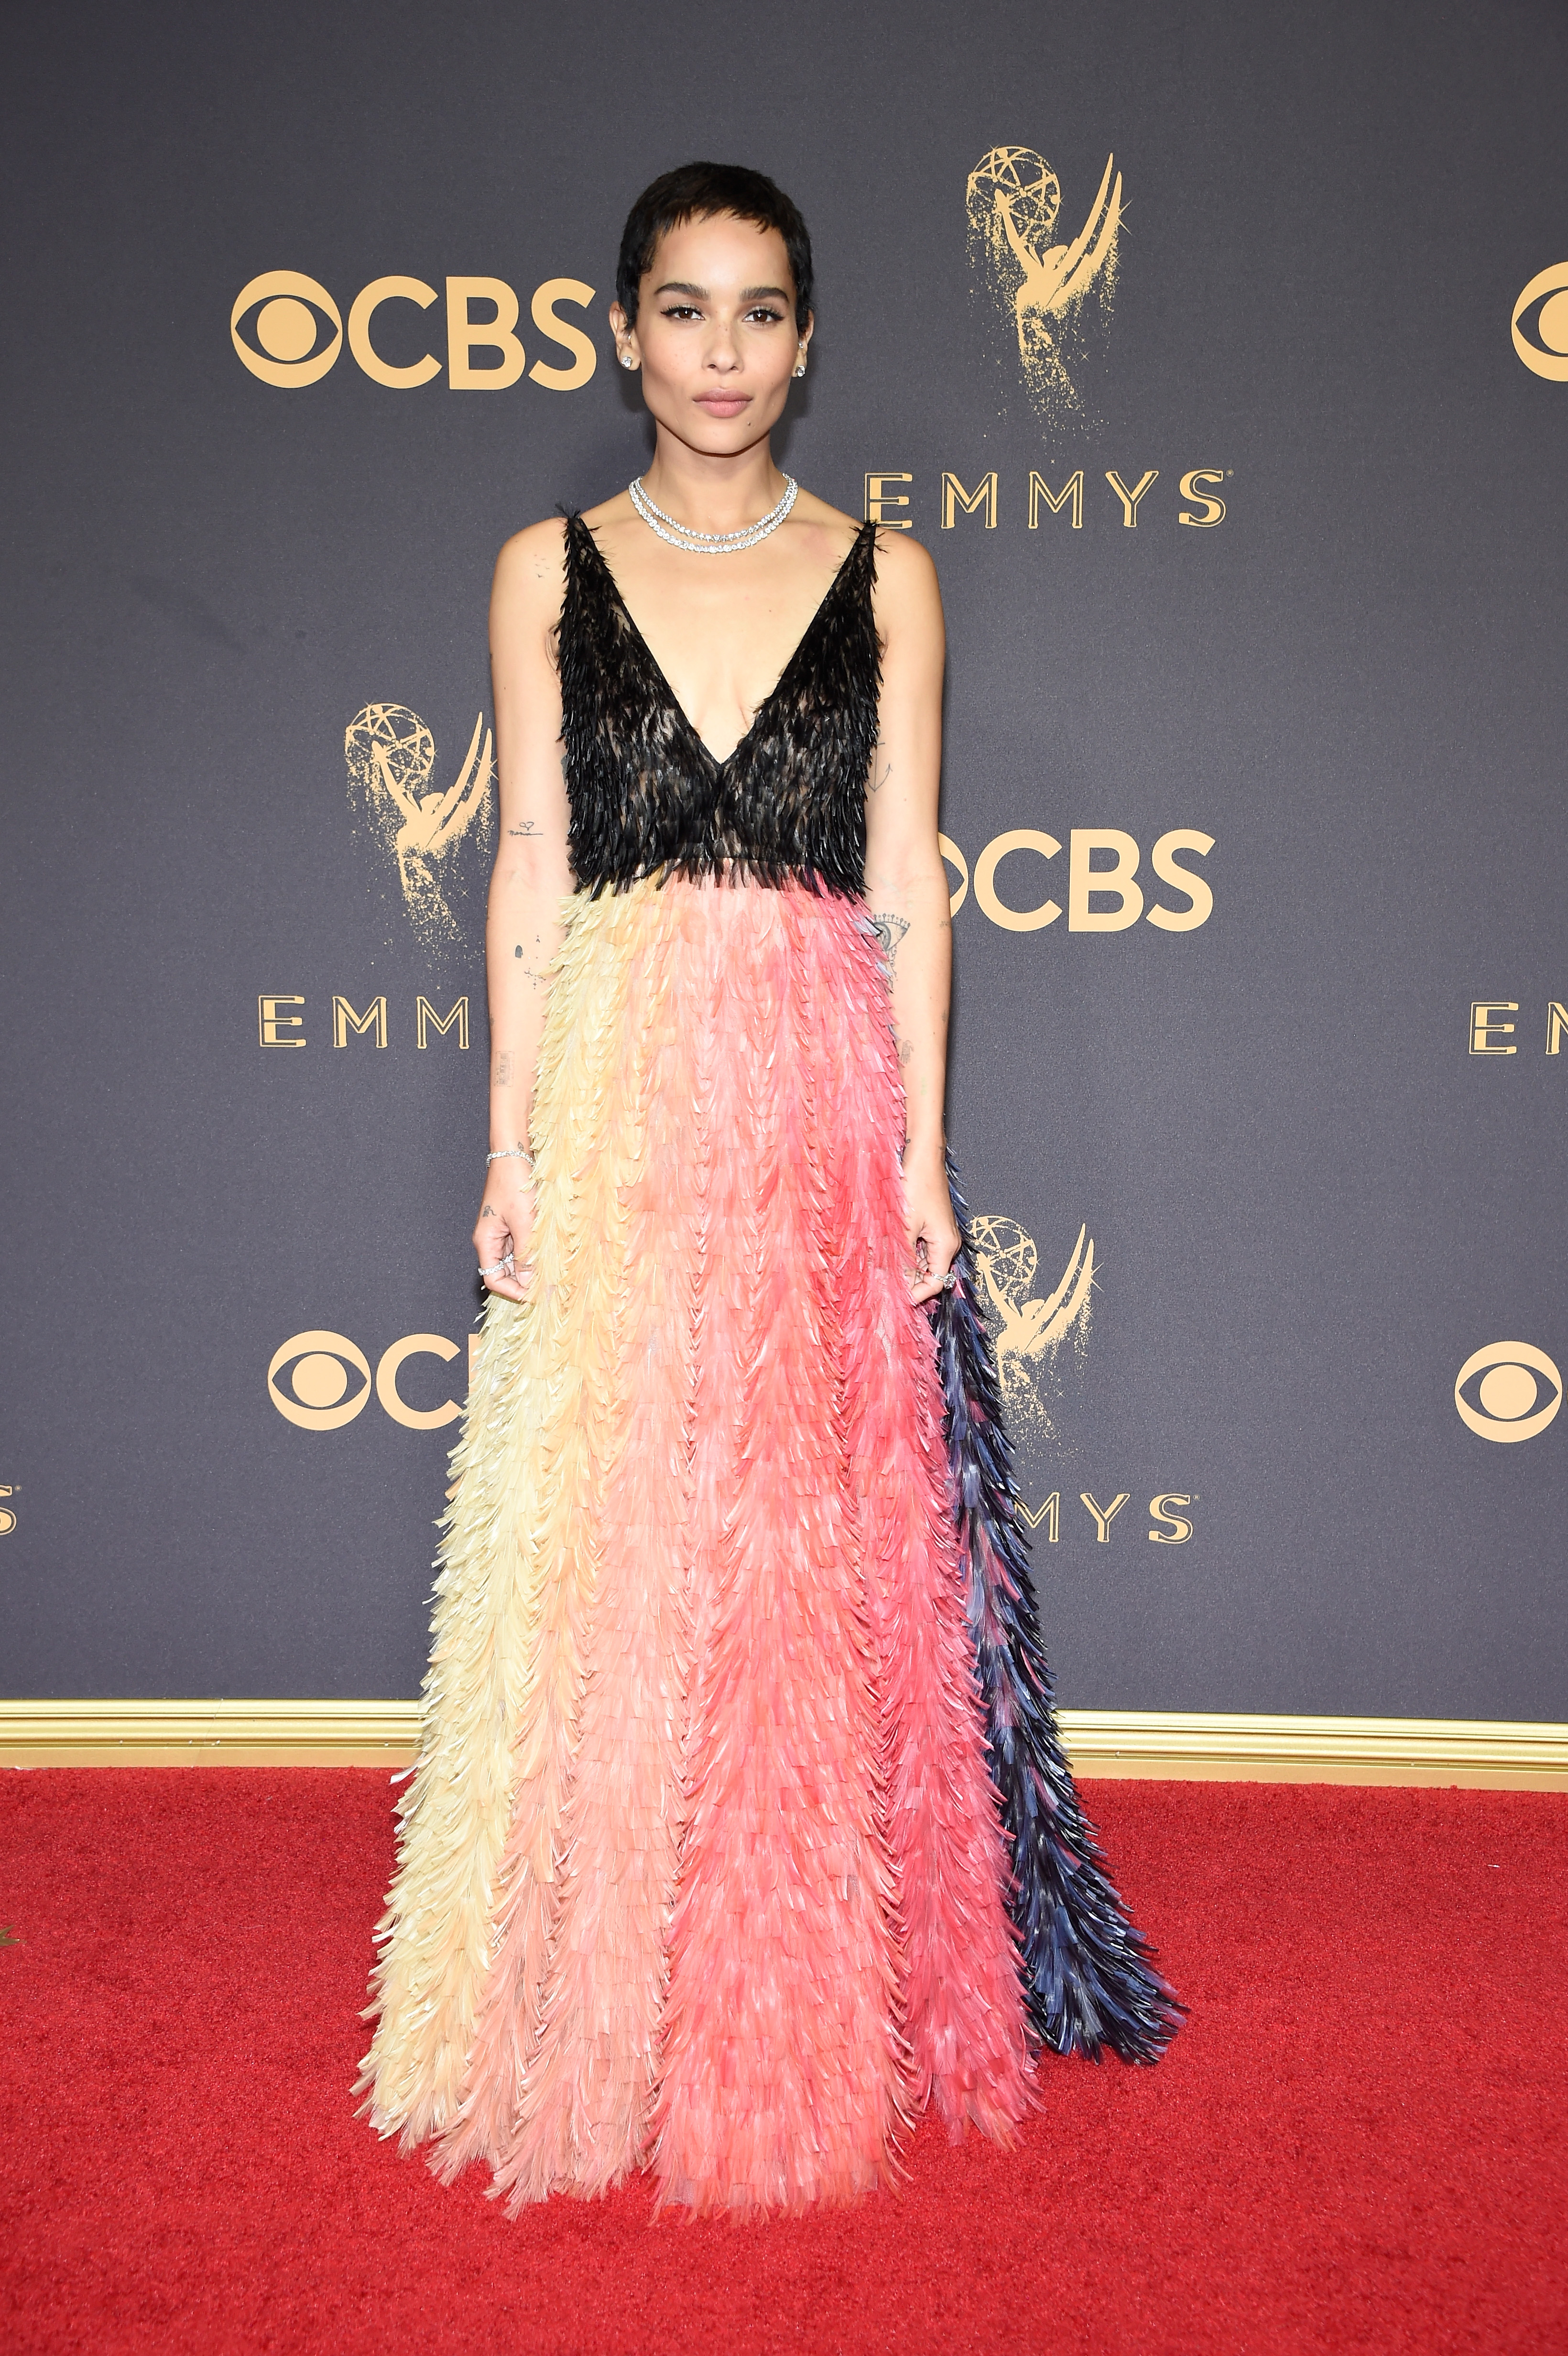 Zoe Kravitz Emmys Red Carpet 2017